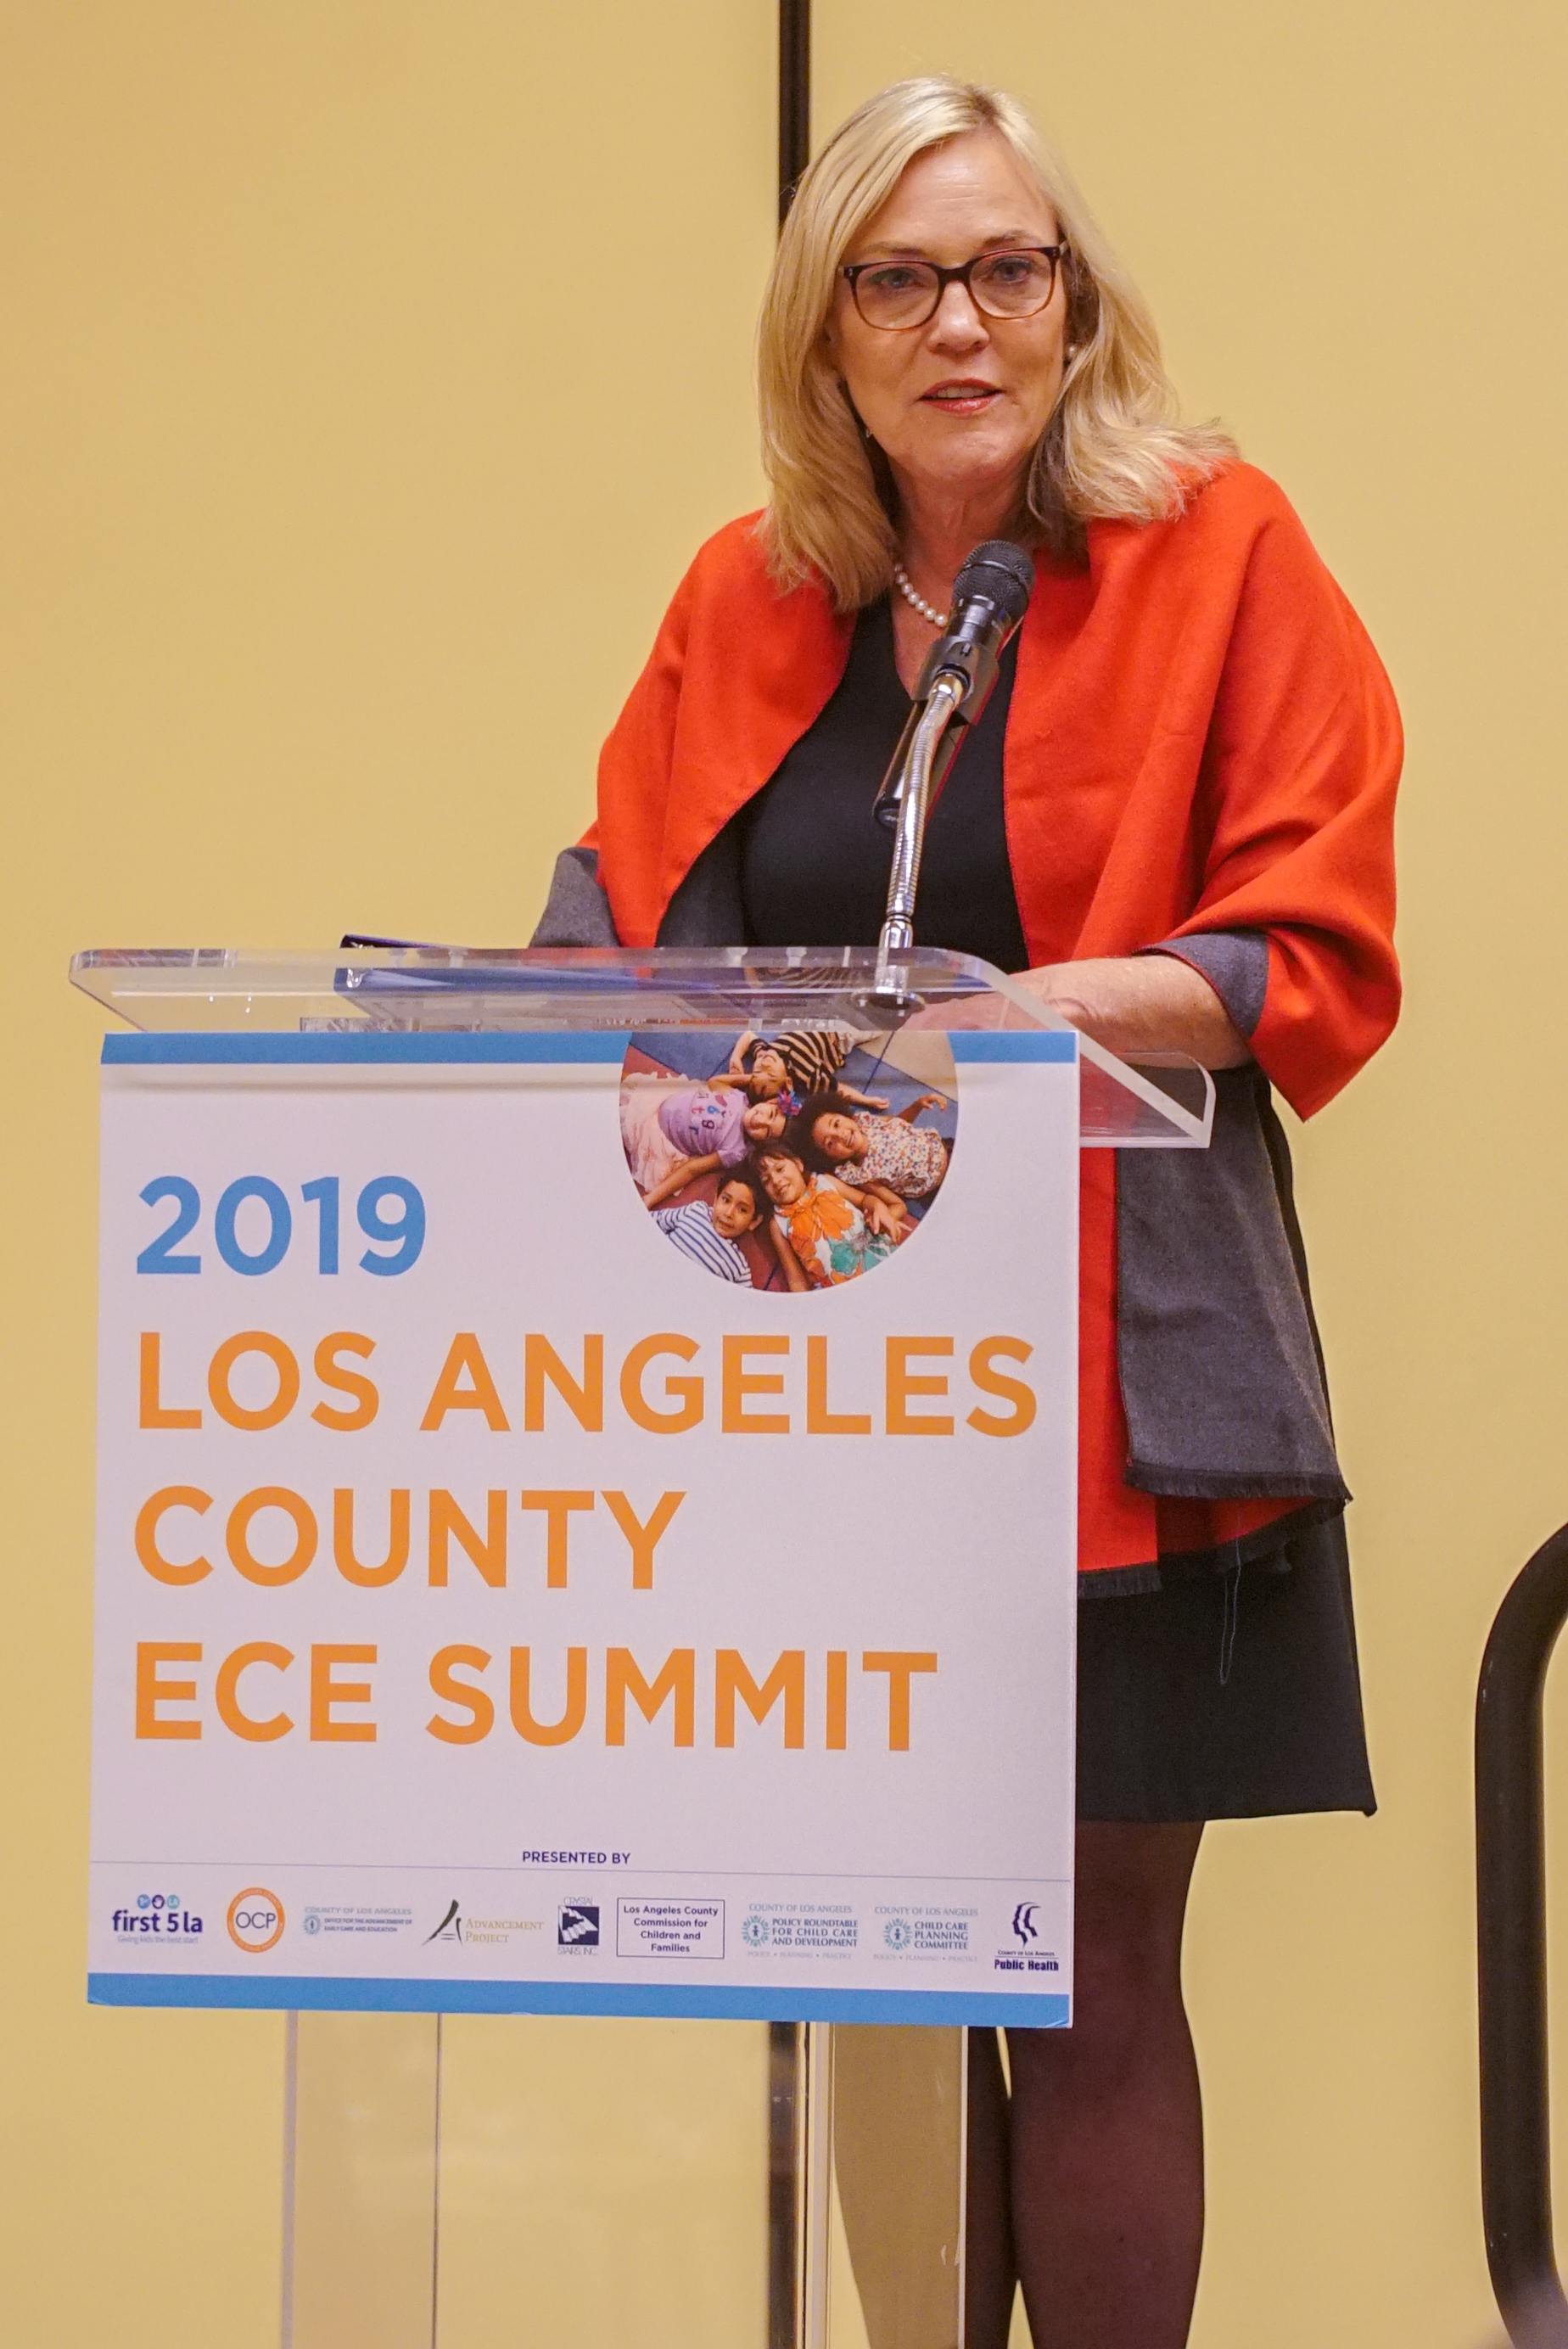 2020 To Be Los Angeles County S Year To Advance Early Childhood Education First 5 Los Angeles